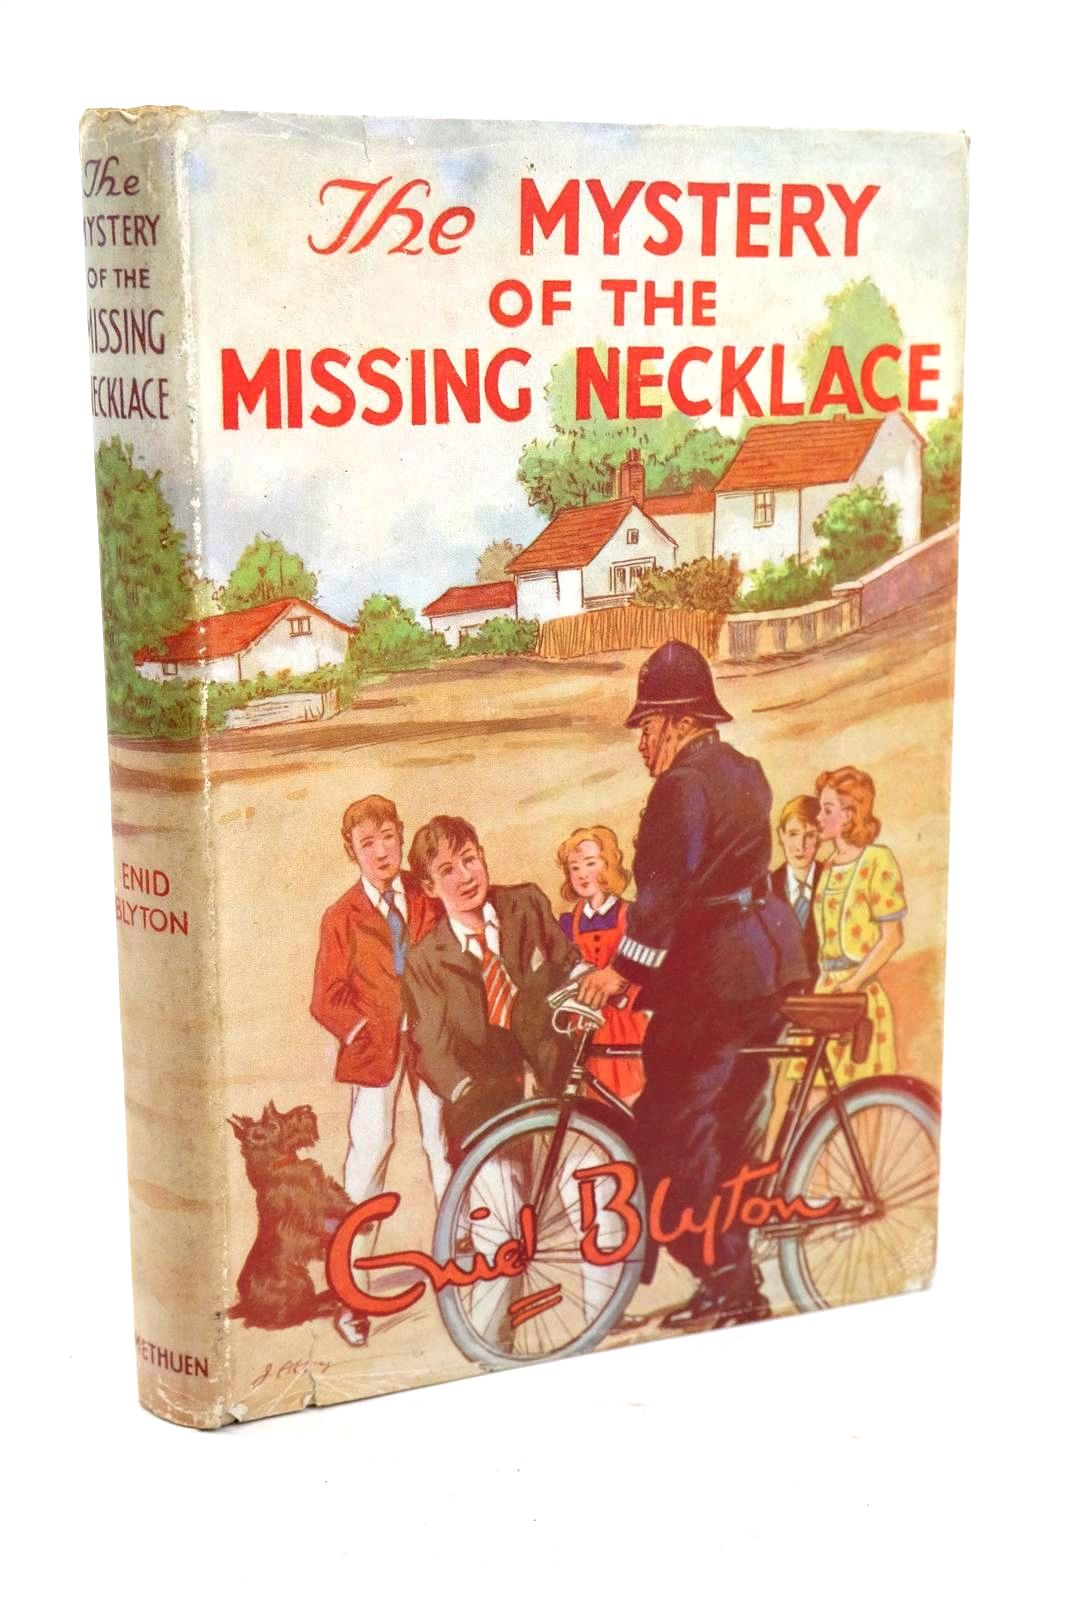 Photo of THE MYSTERY OF THE MISSING NECKLACE written by Blyton, Enid illustrated by Abbey, J. published by Methuen & Co. Ltd. (STOCK CODE: 1320312)  for sale by Stella & Rose's Books